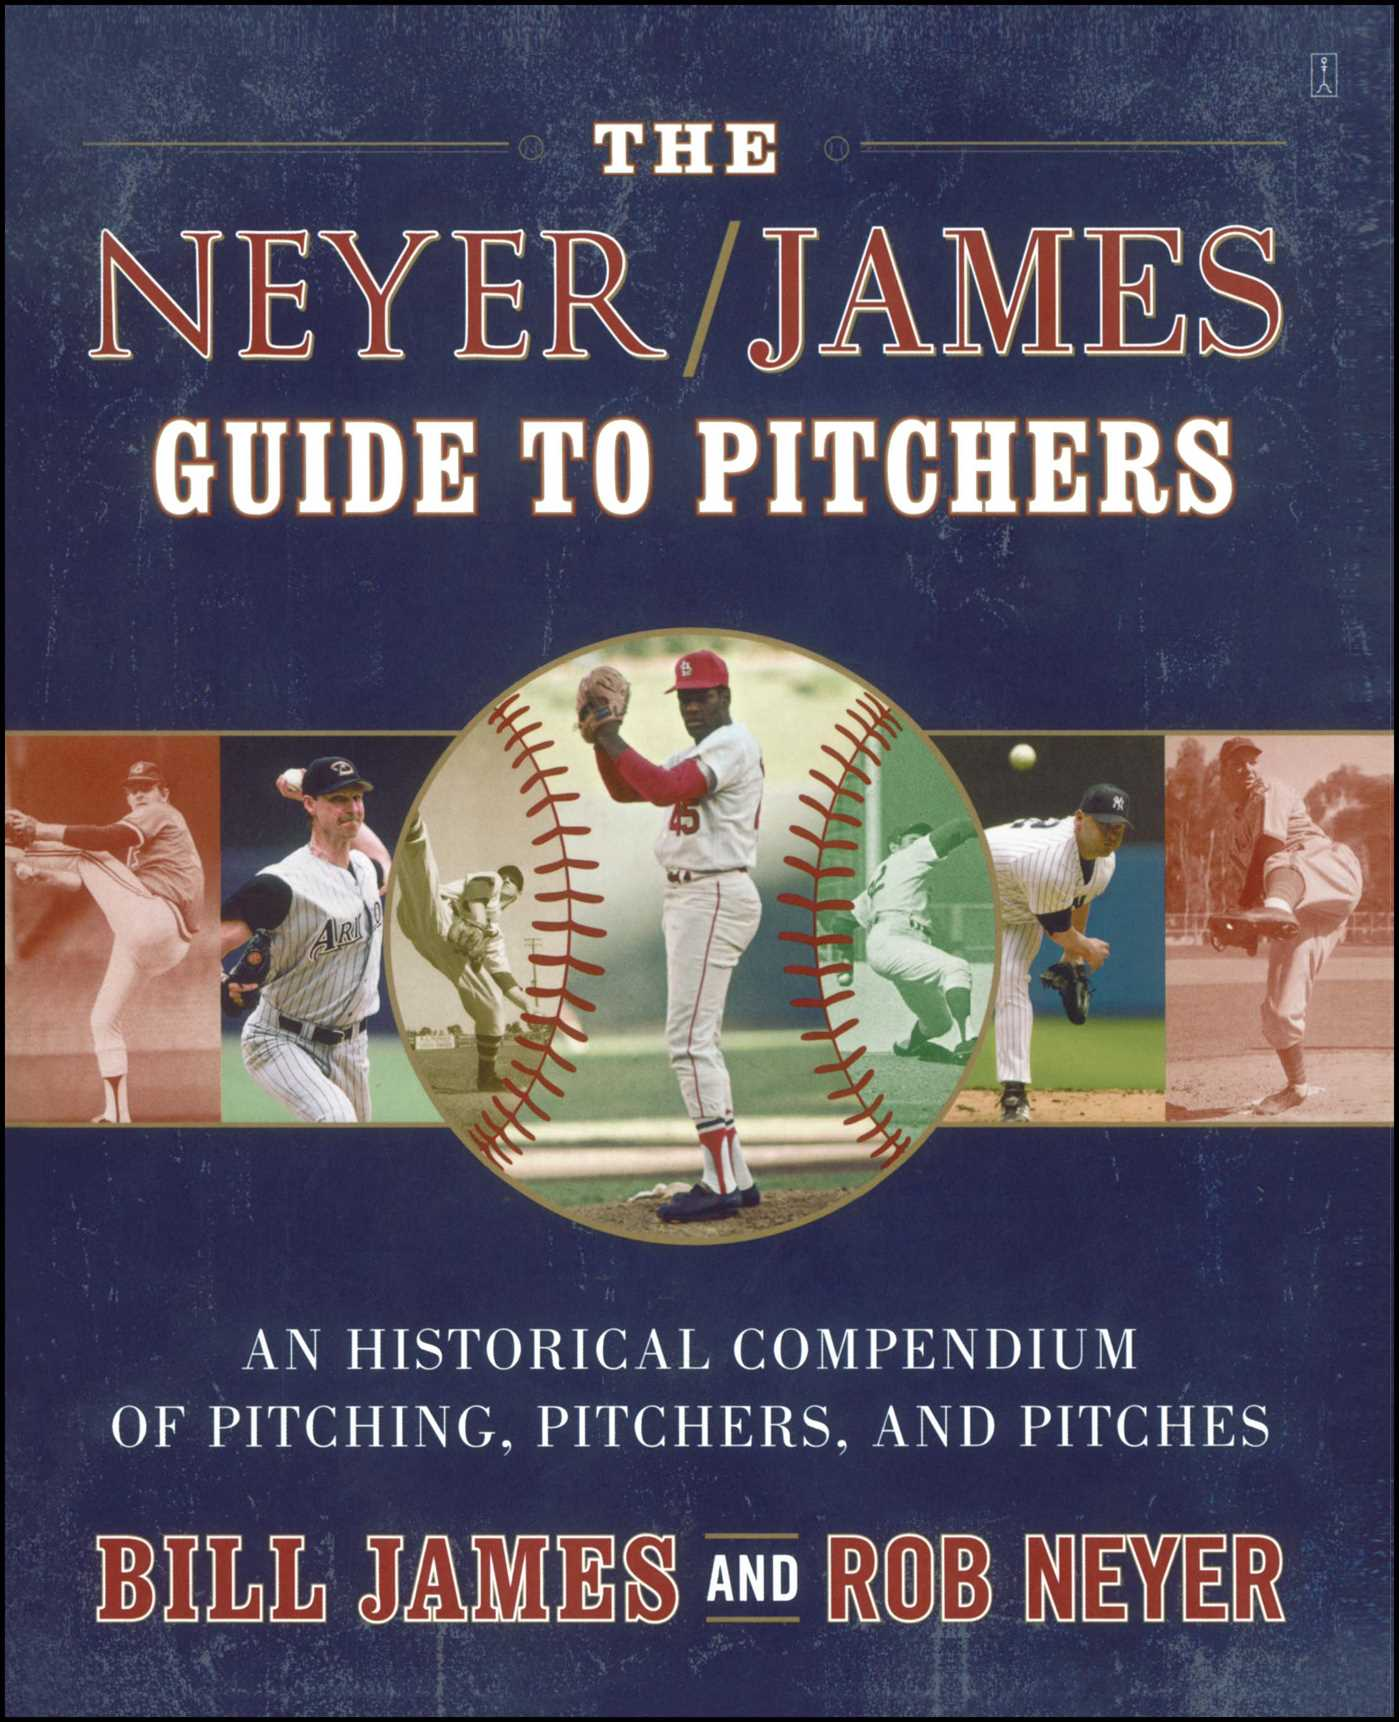 The neyer james guide to pitchers 9780743261586 hr